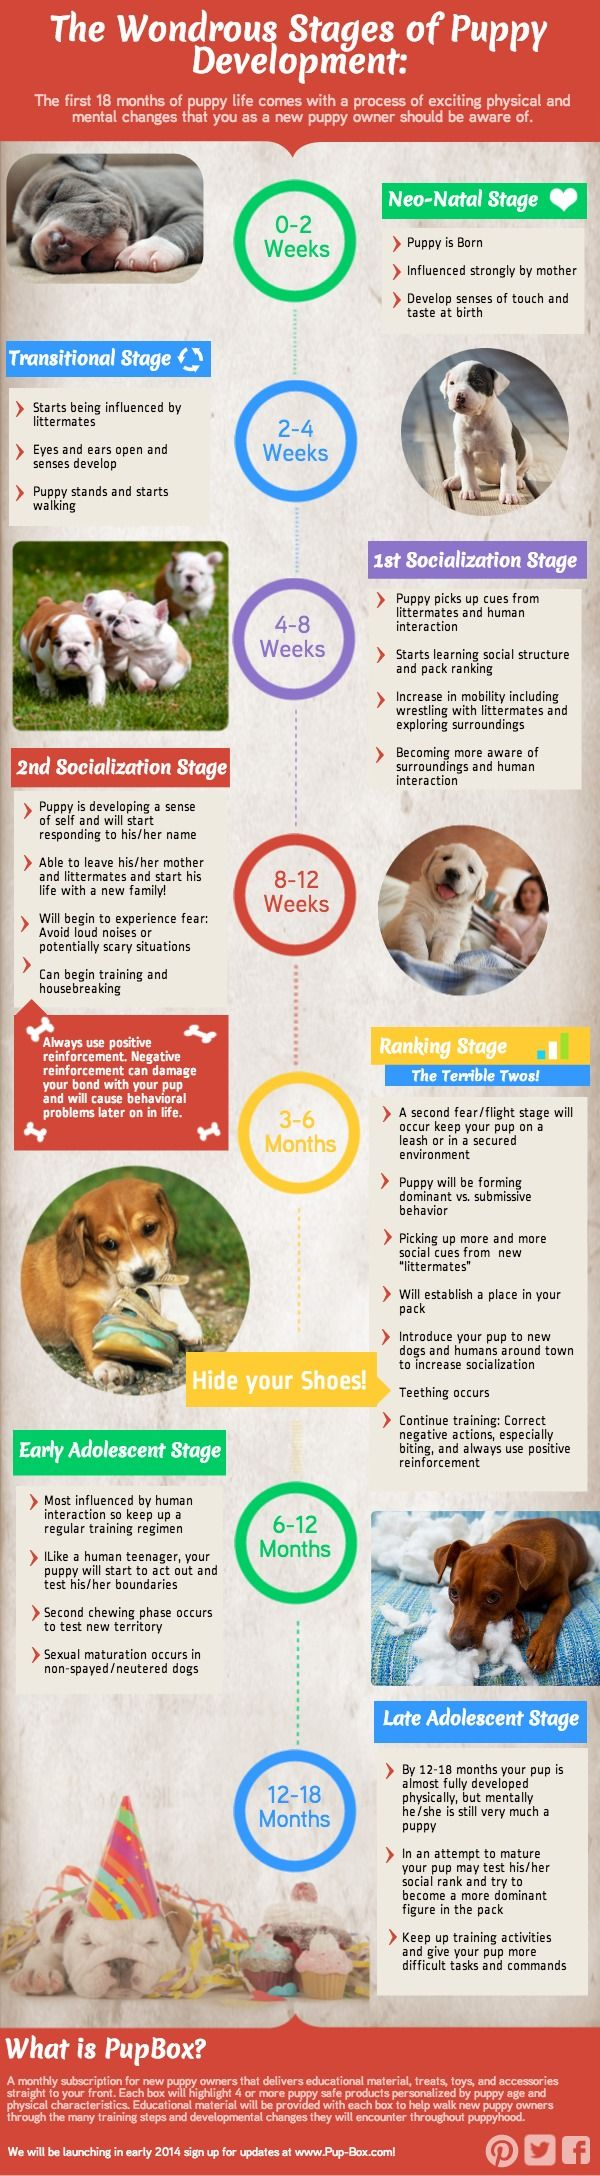 Puppy development stages infographic. Check it out and share!